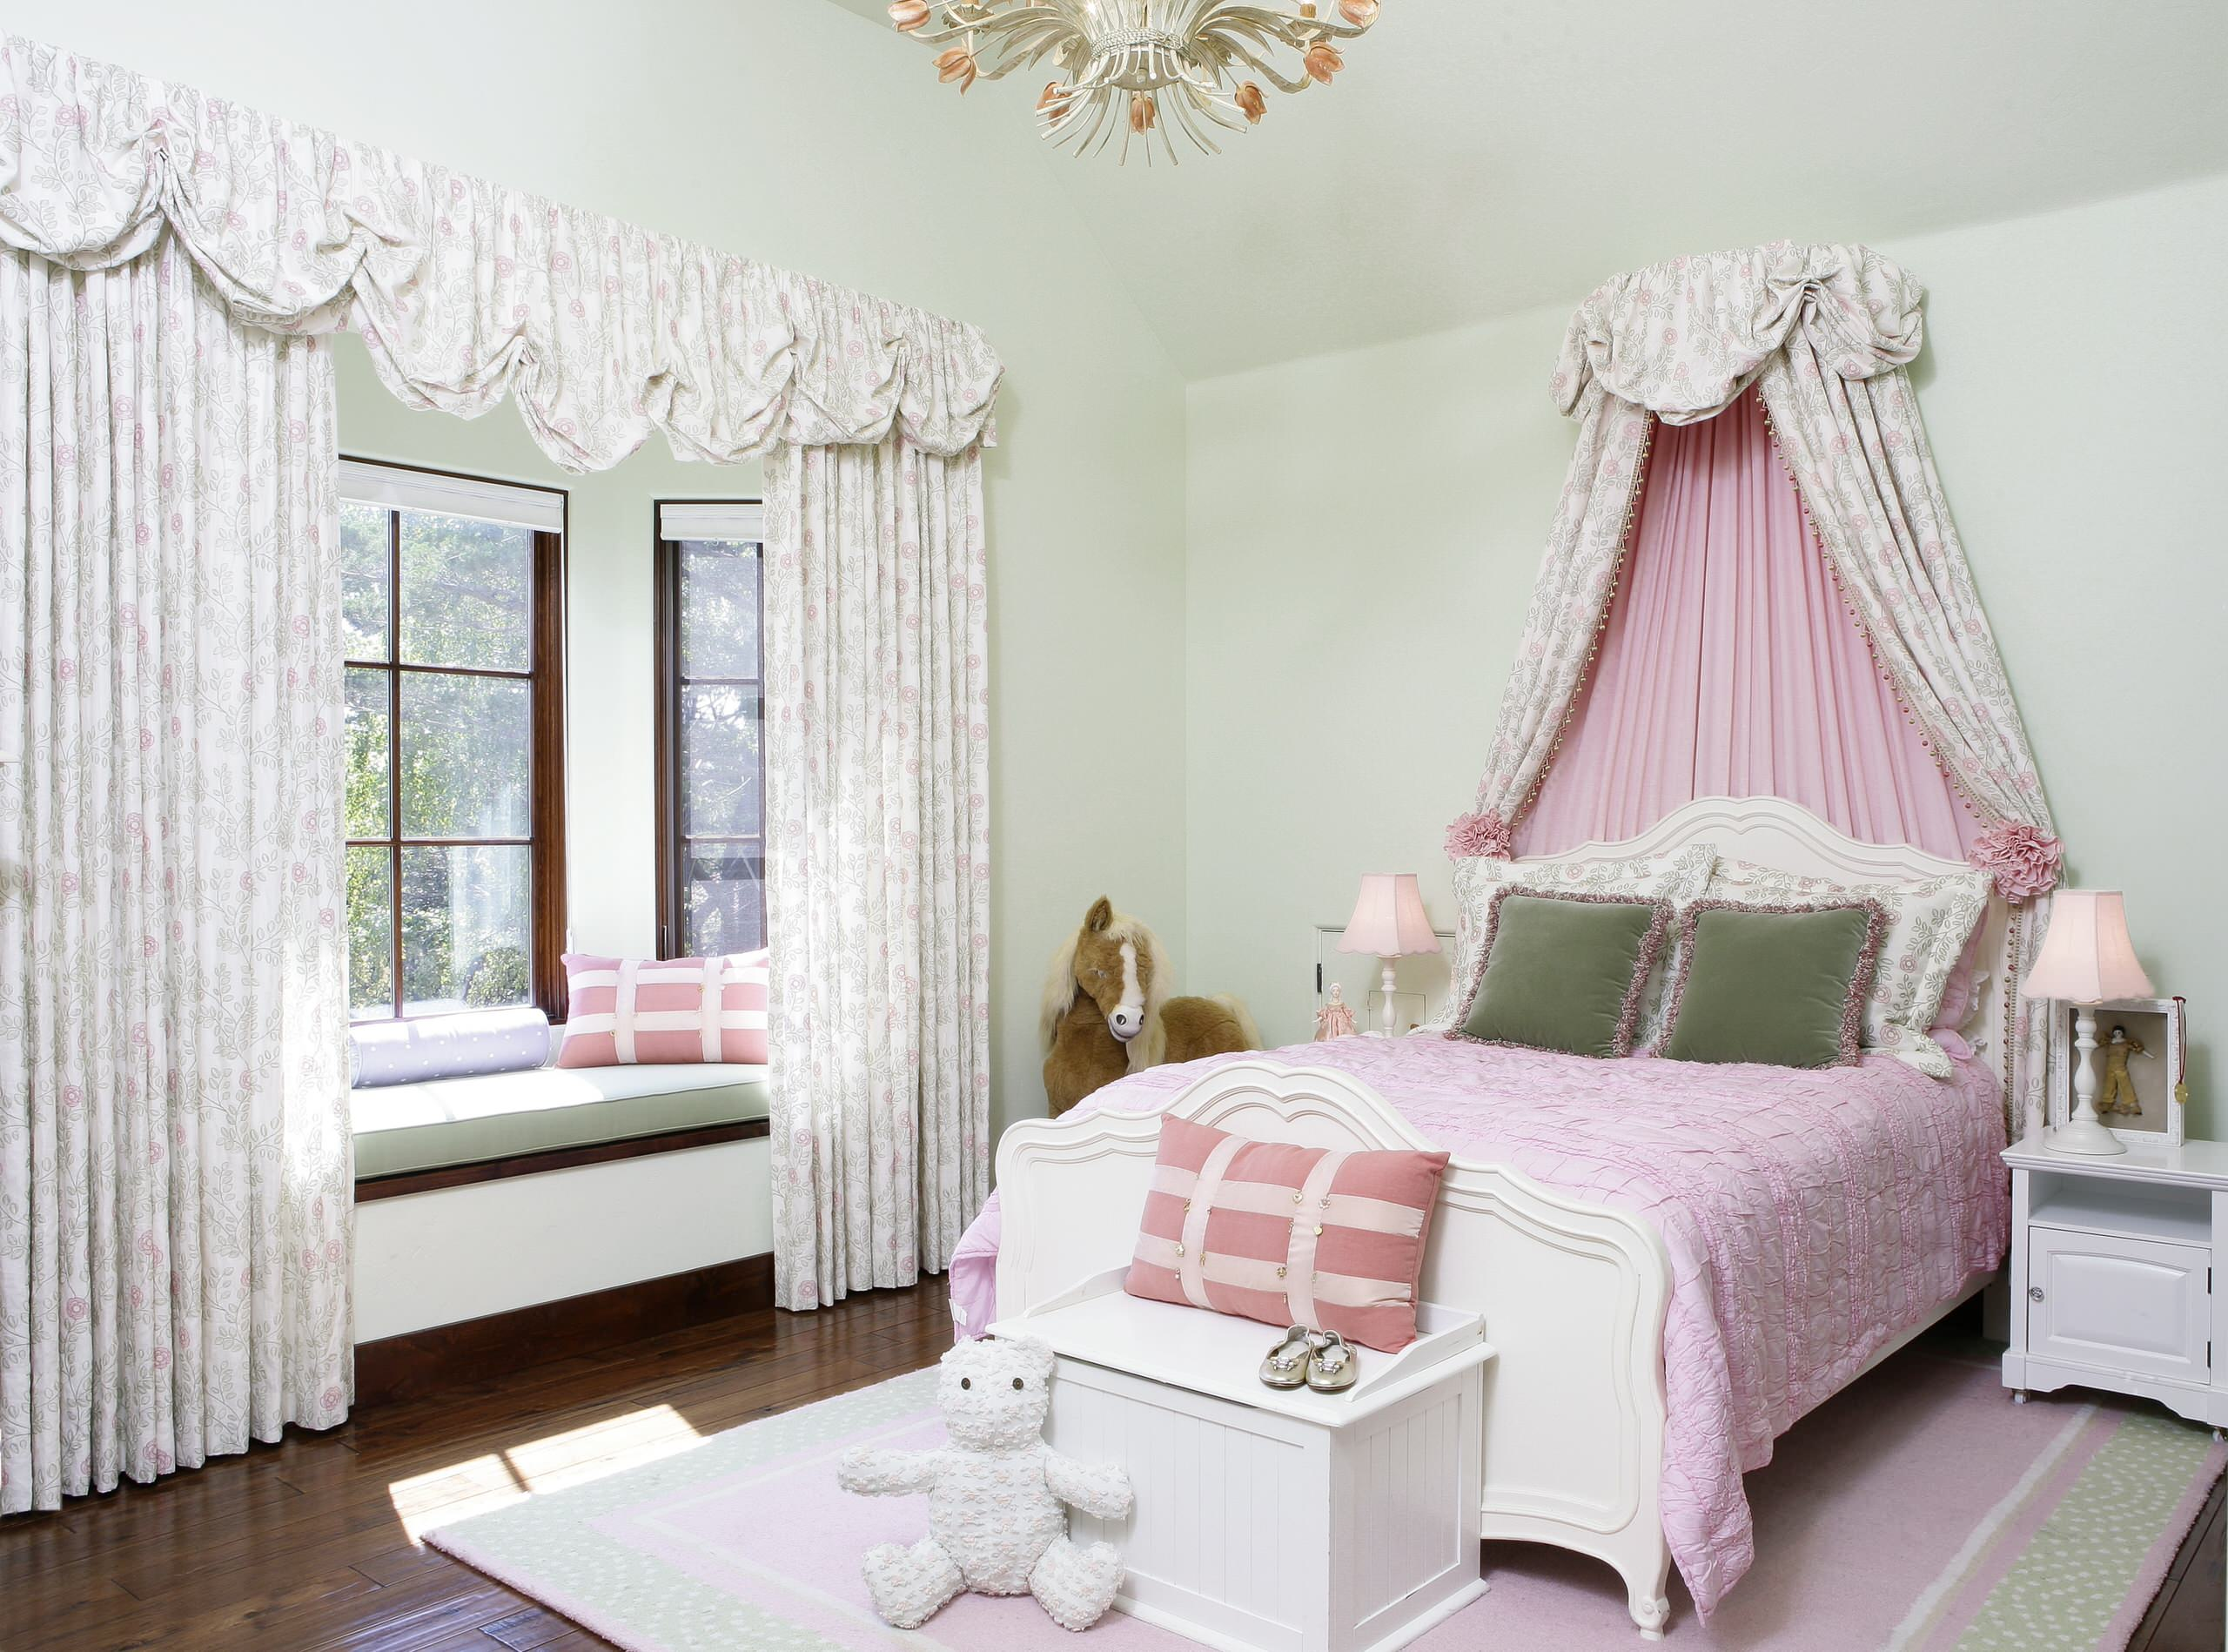 75 Beautiful Kids Room With Green Walls Pictures Ideas February 2021 Houzz